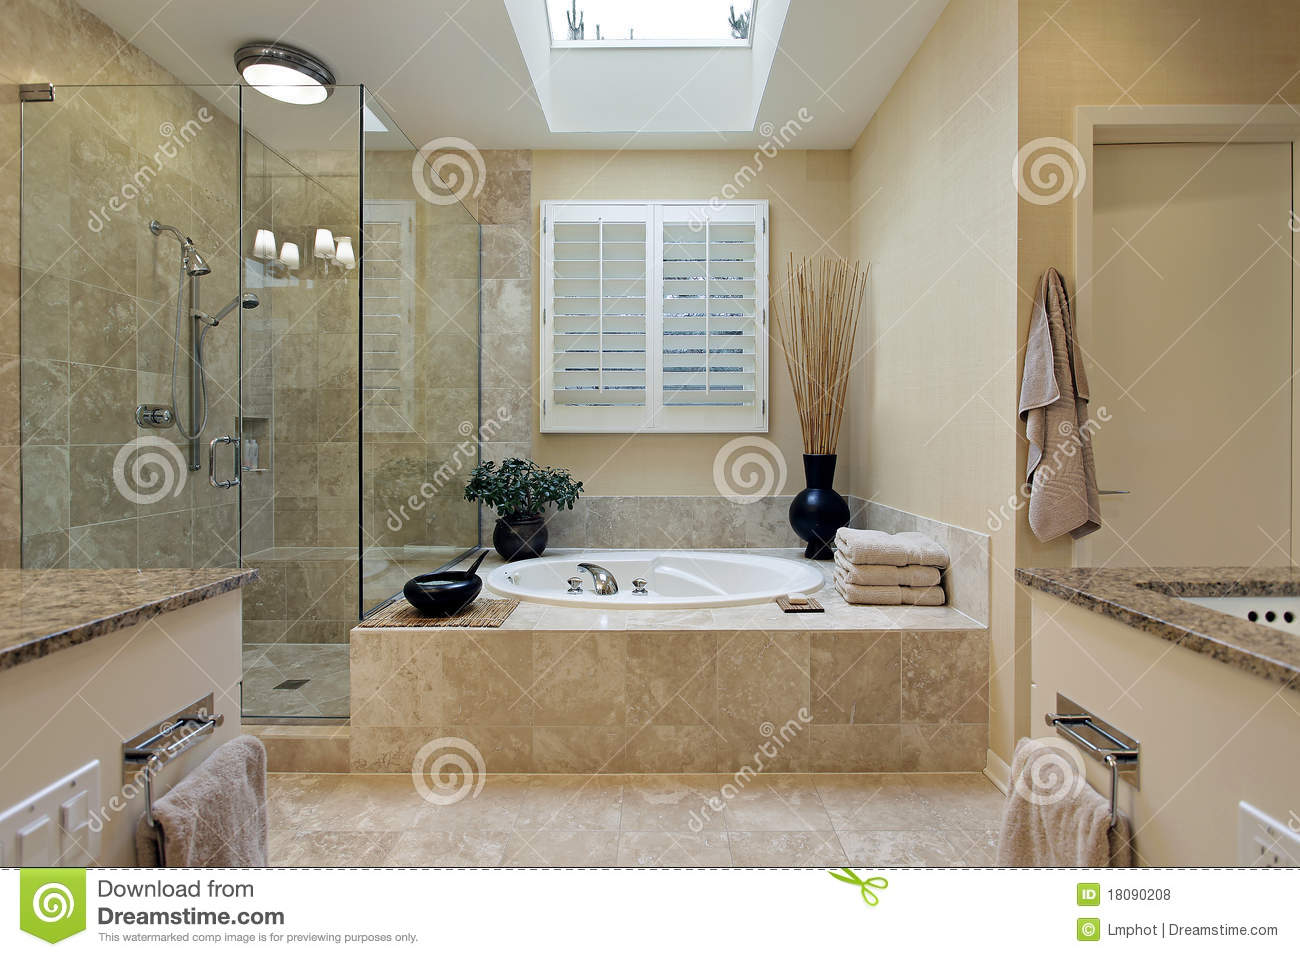 Walk In Baths And Showers Prices Luxury Master Bath With Skylight Royalty Free Stock Photos